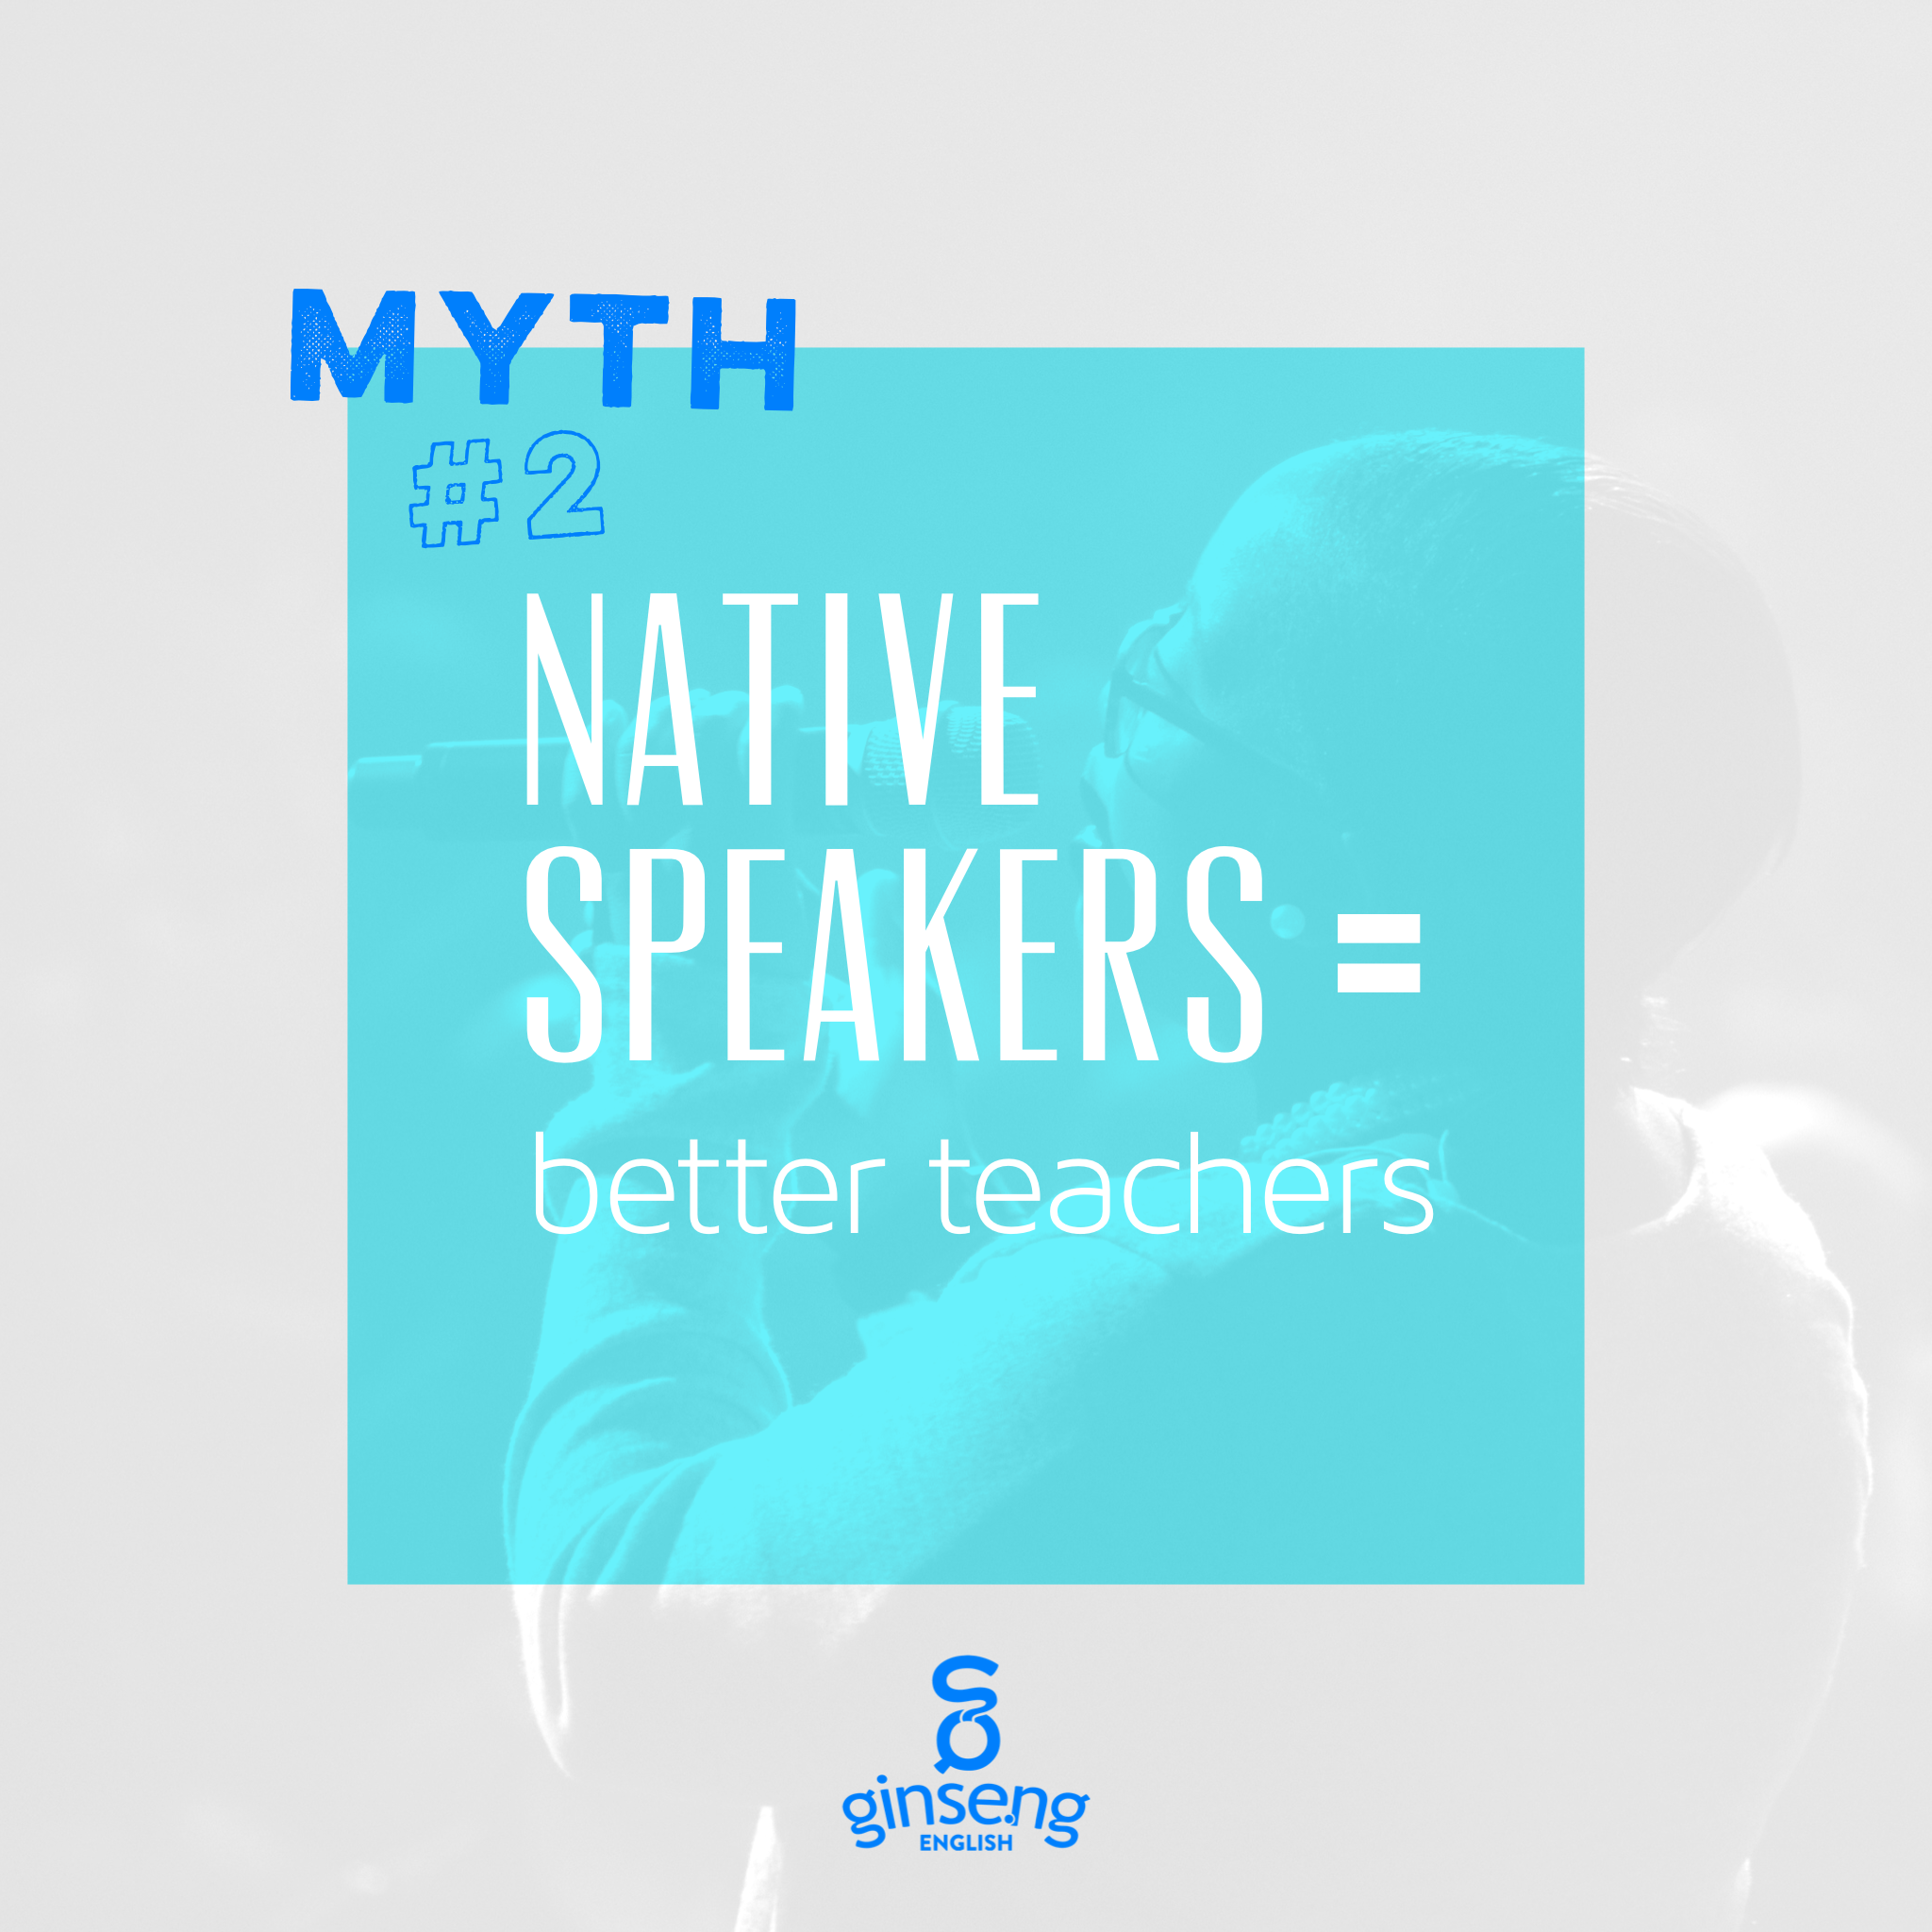 Myth #2 Native speakers = better teachers